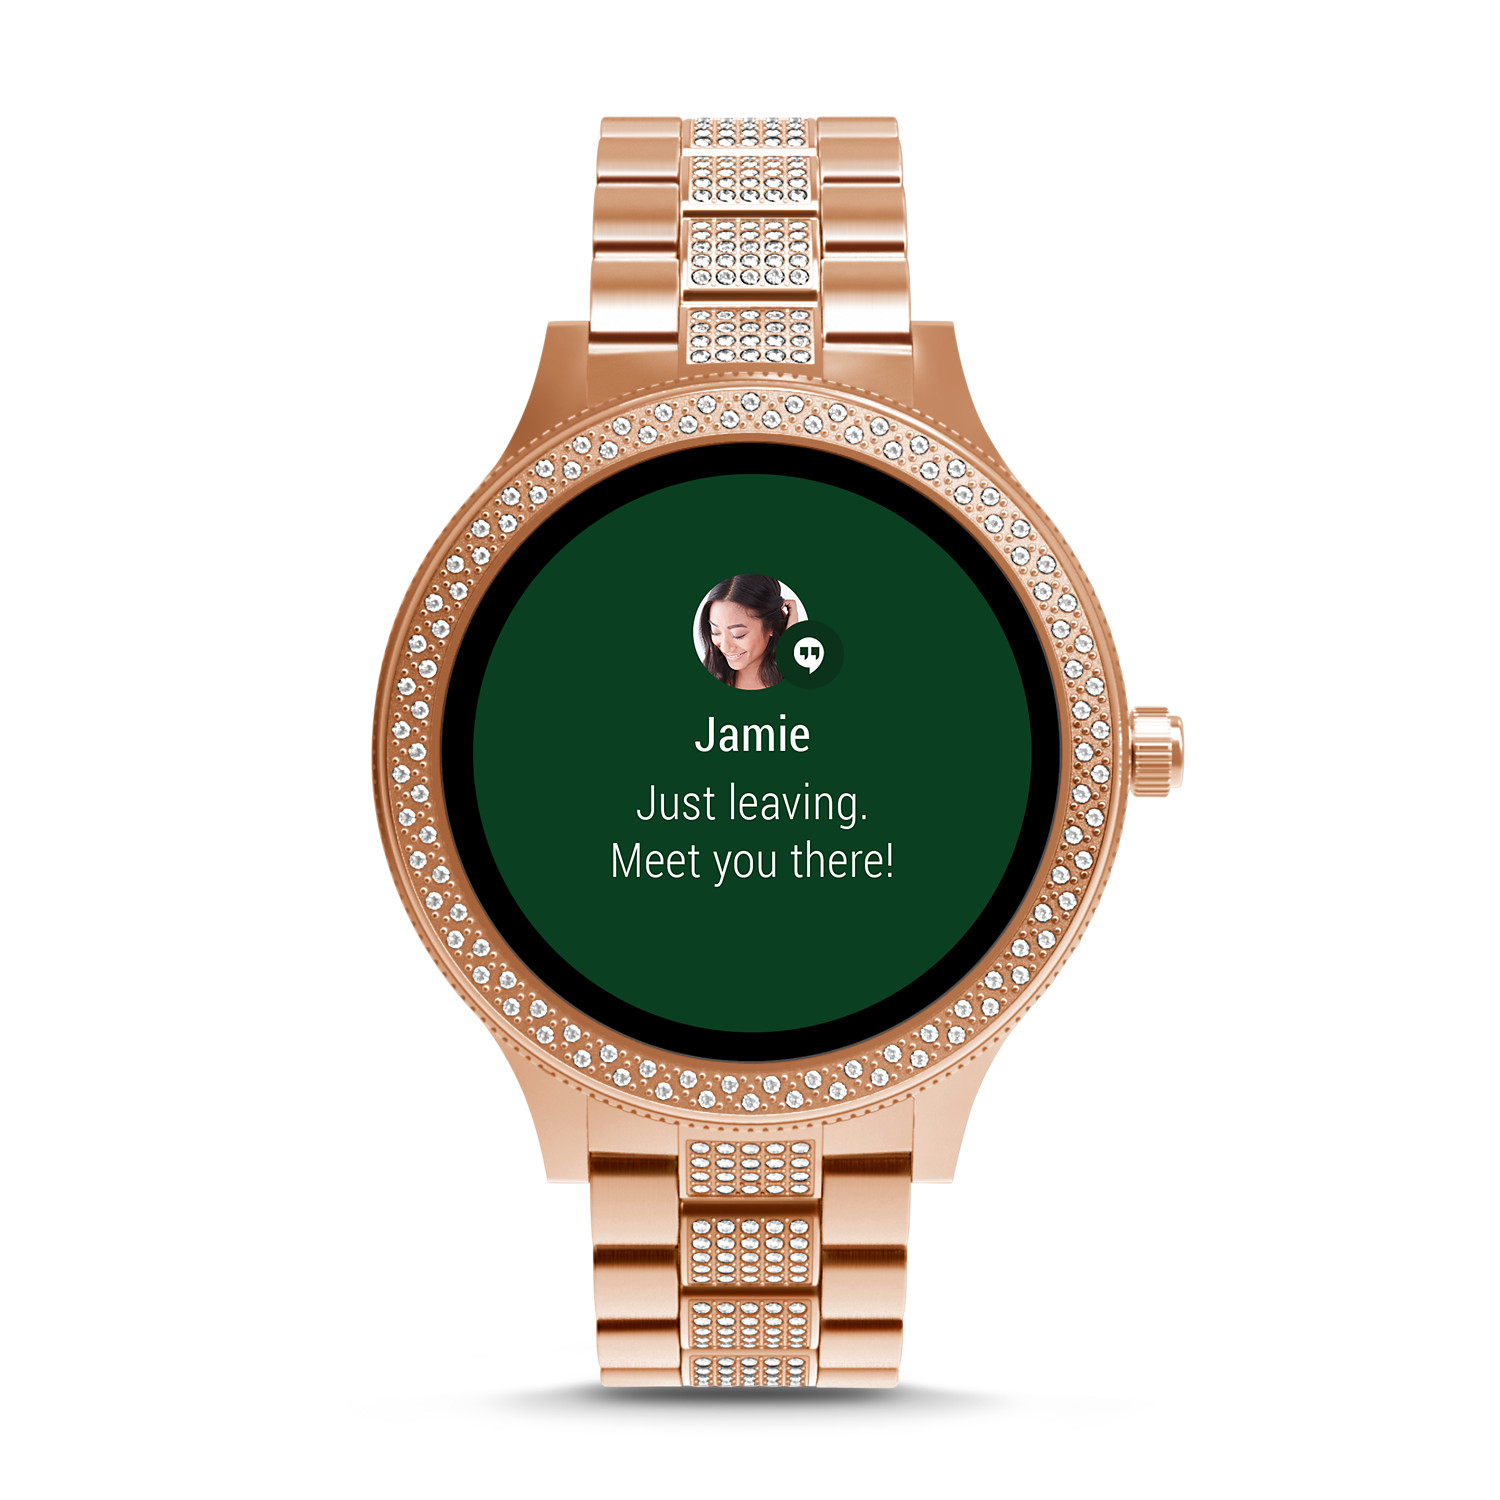 02db2a341059 Gen 3 Smartwatch - Venture Rose Gold-Tone Stainless Steel - Fossil